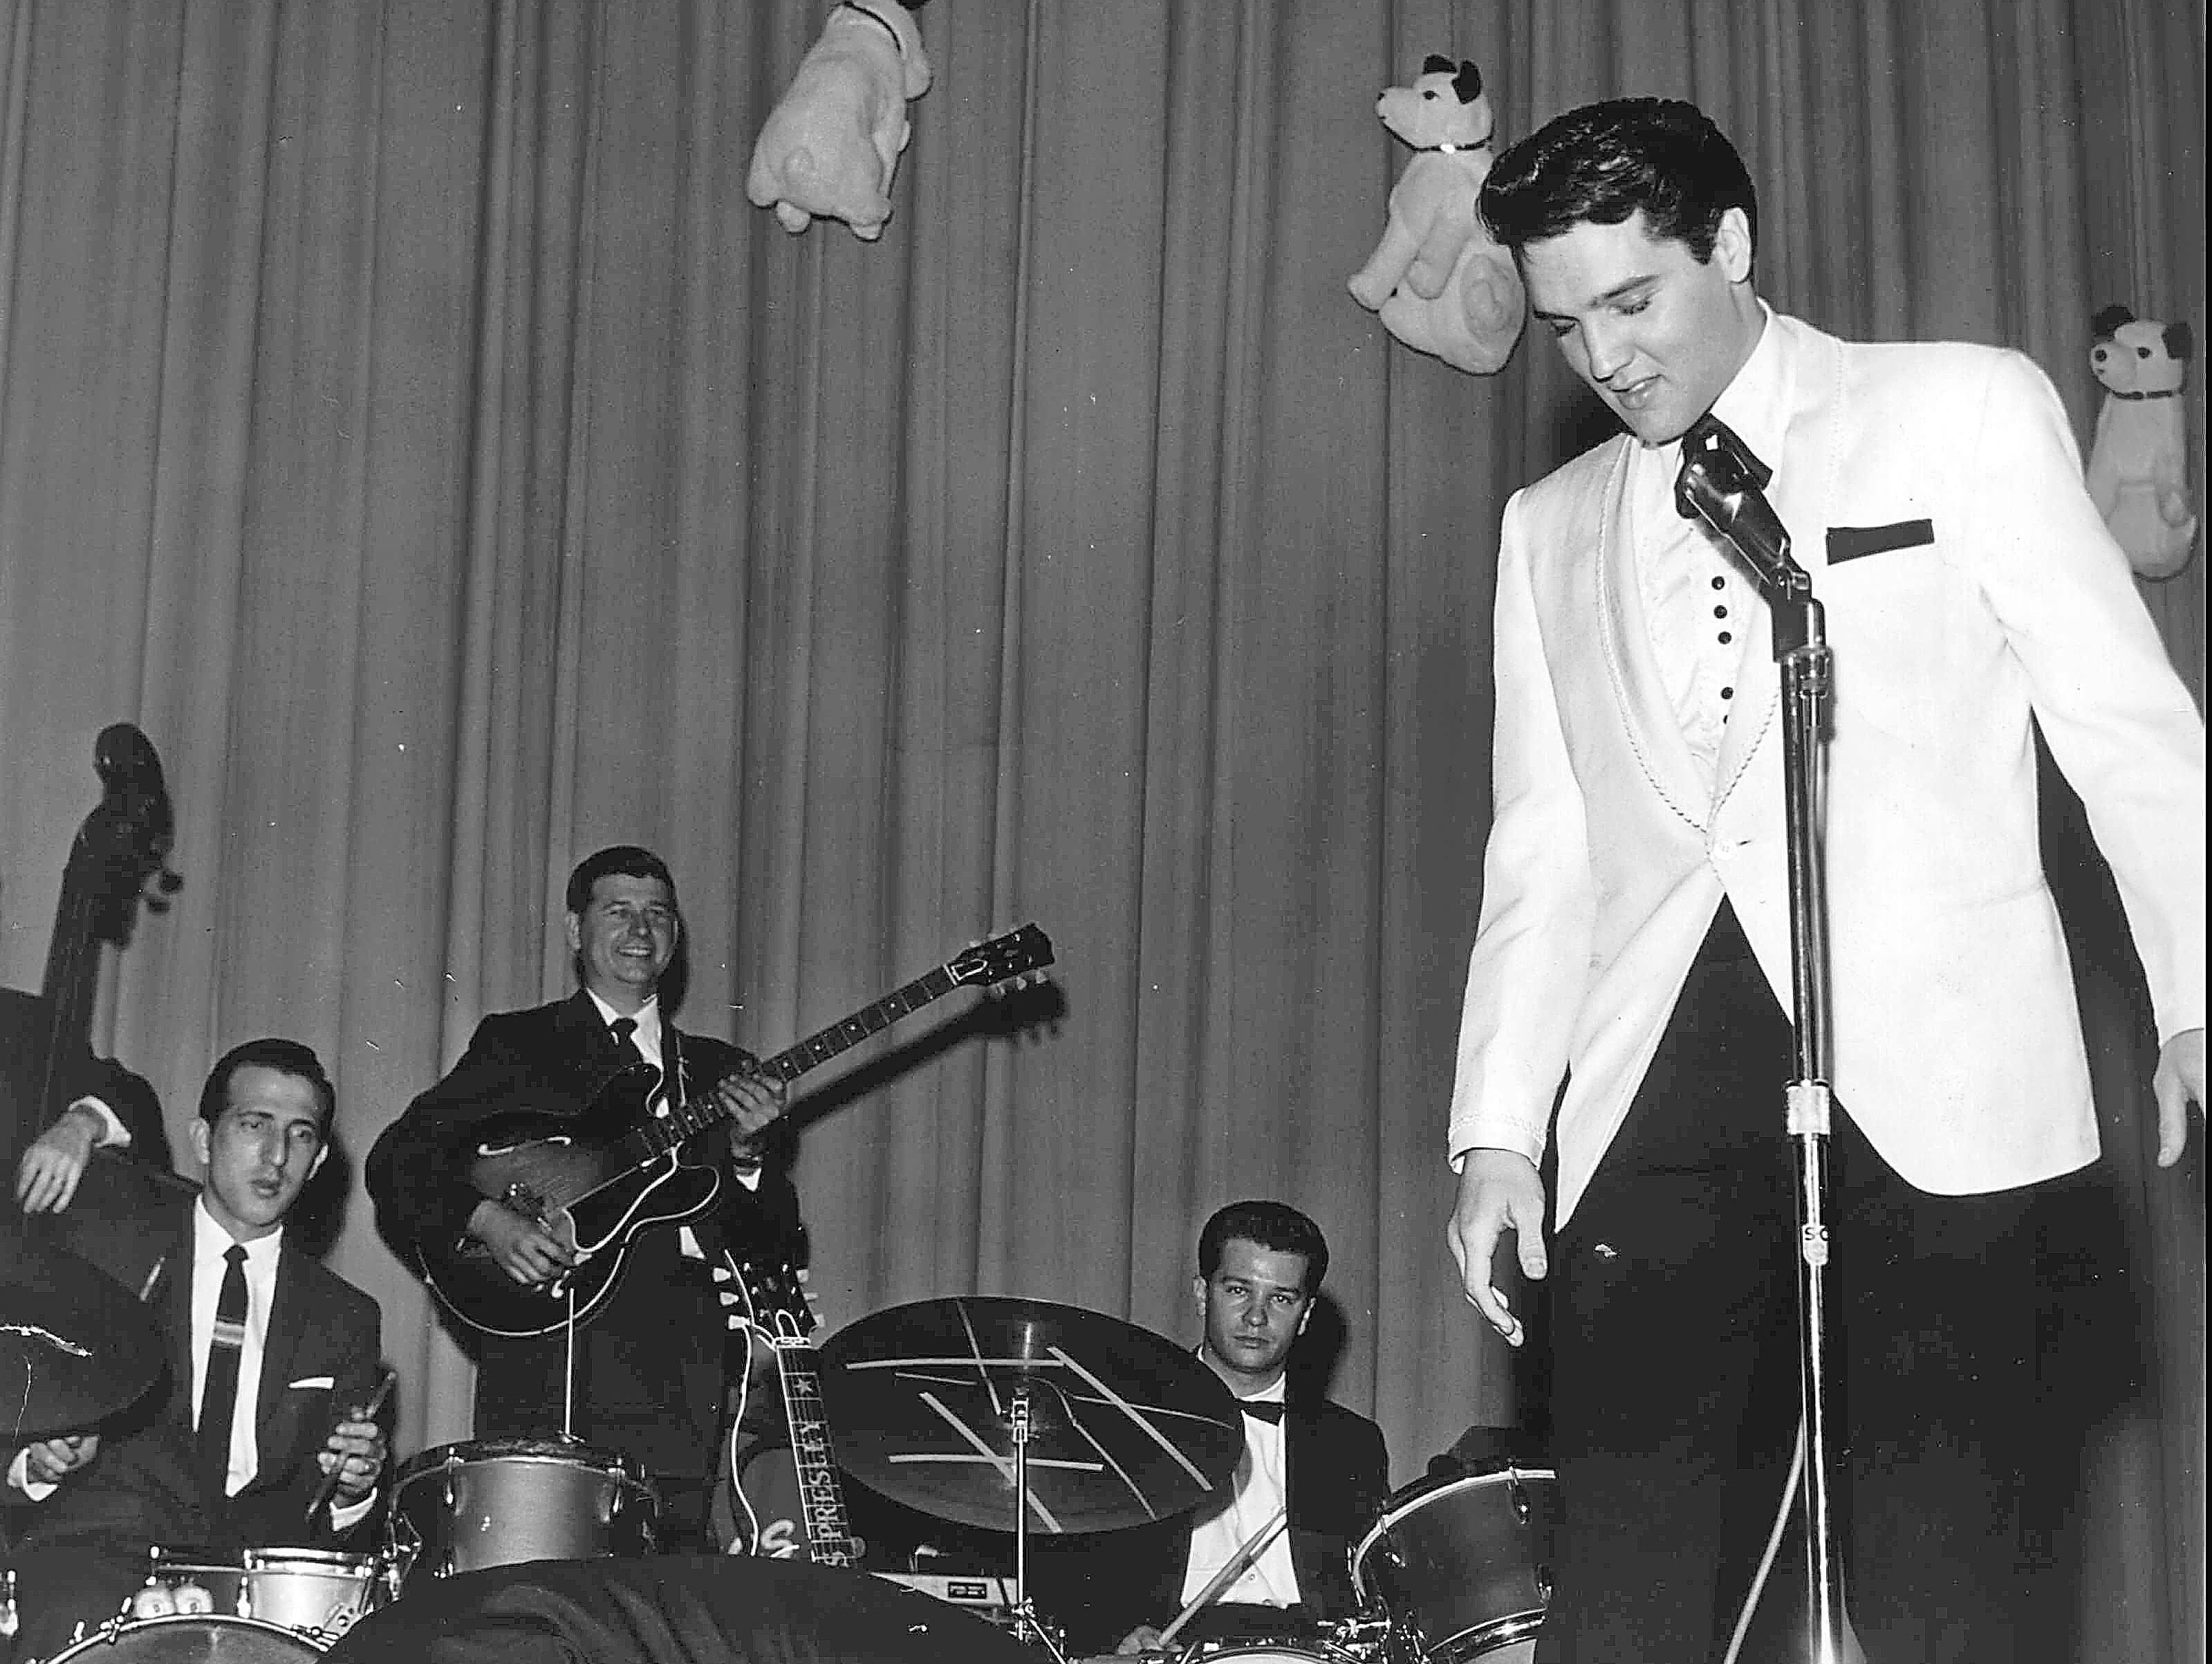 Comedian George Jessel hit the stage in an exaggerated salaam to the King of Rock 'n' Roll at Elvis' evening performance at Ellis Auditorium on Feb. 25, 1961. Jessel, the master of ceremonies, could not make it to the earlier matinee performance because of an airline strike. Elvis Presley Day began earlier with a luncheon honoring the singer at Hotel Claridge. More than $50,000 was raised for charity from the events.